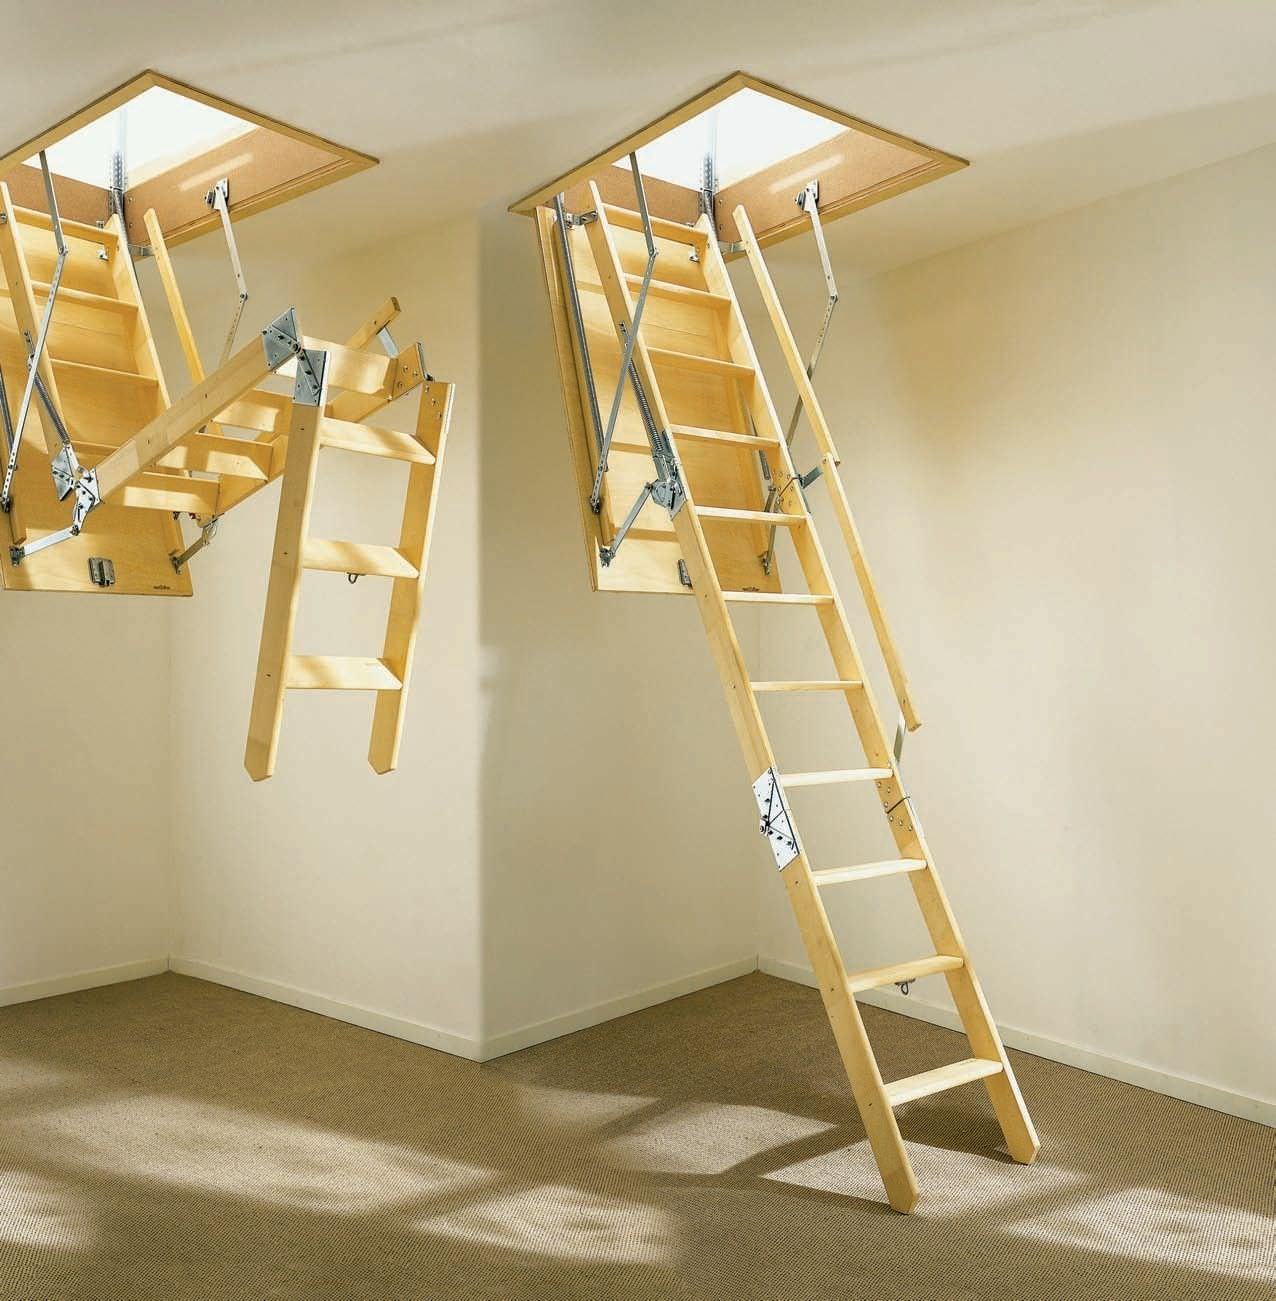 Pull Down Attic Stairs For Small Openings Folding Attic Stairs Attic Stairs Attic Ladder